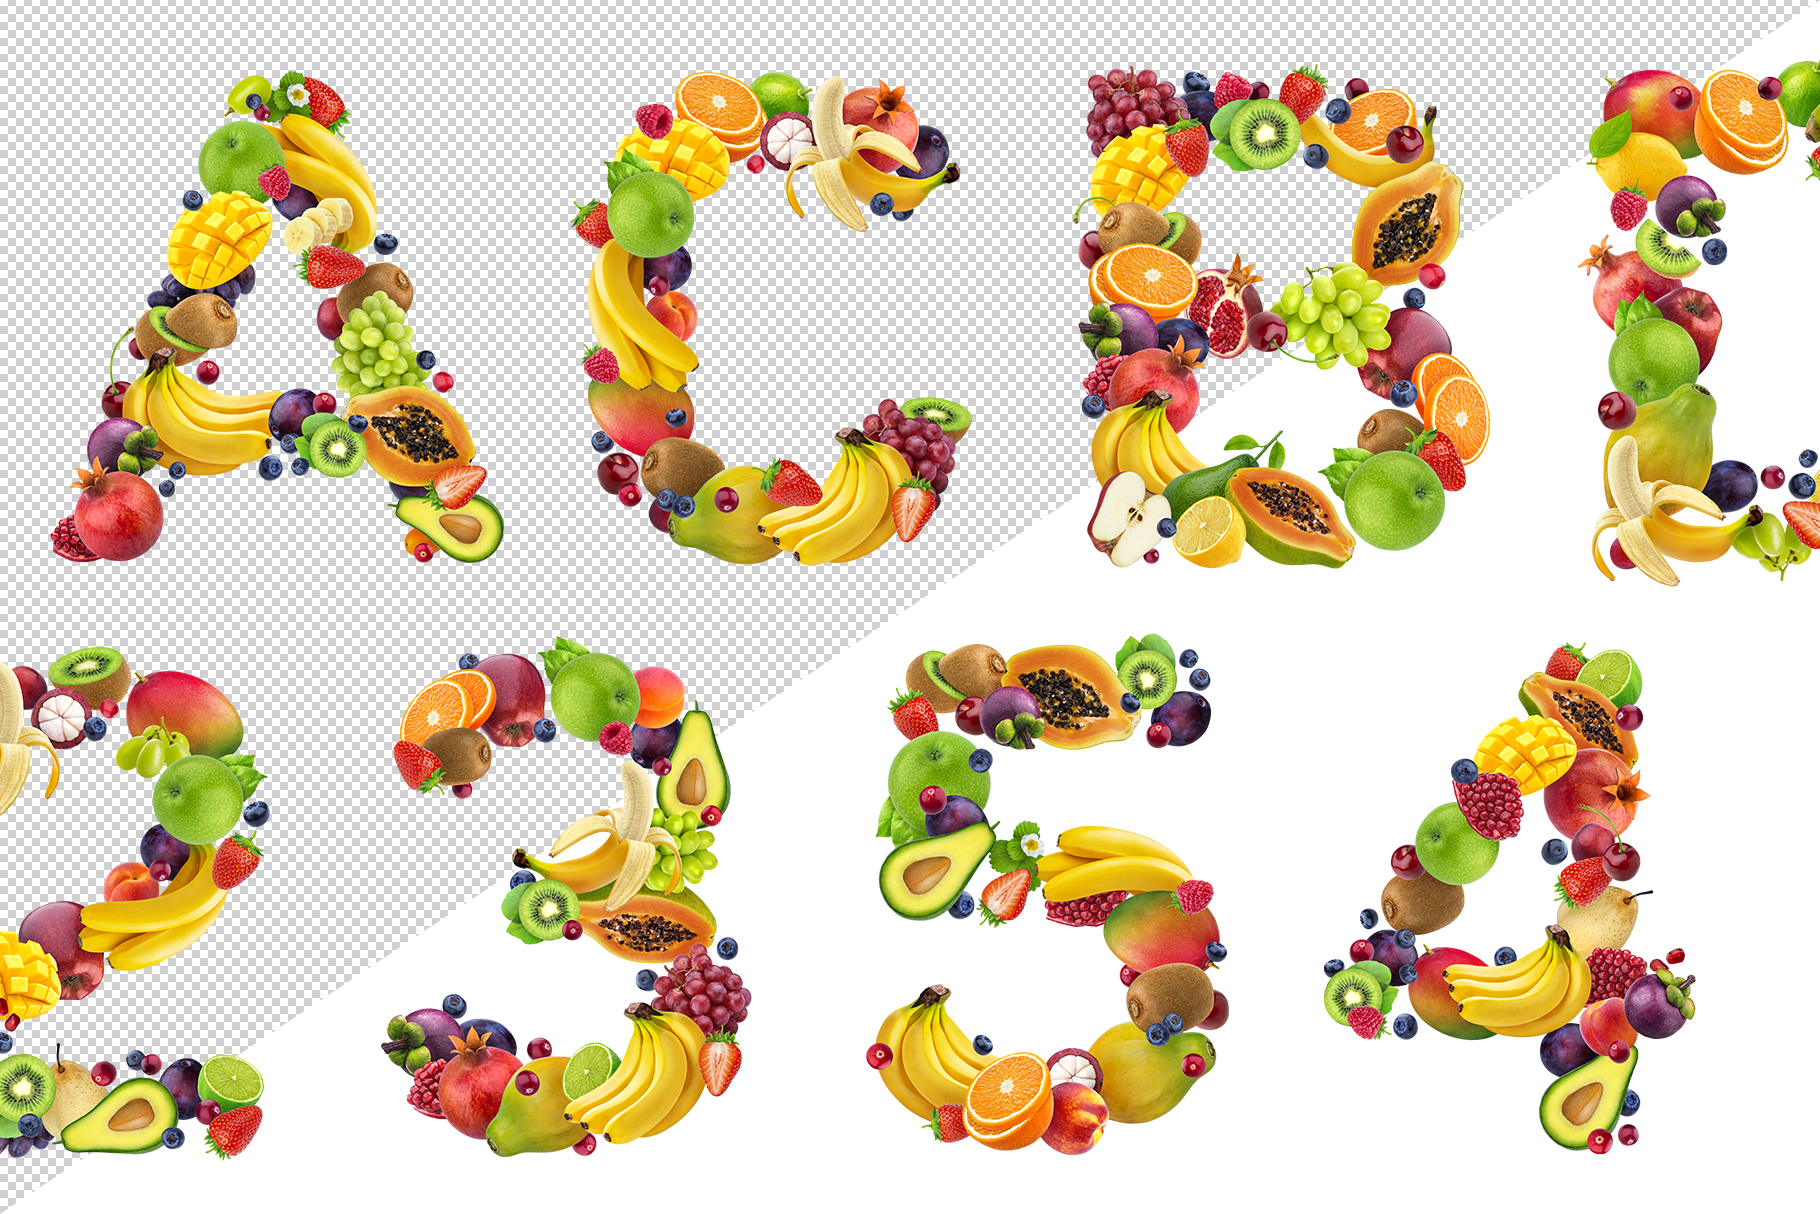 Fruits and berries alphabet, healthy alphabet example image 3